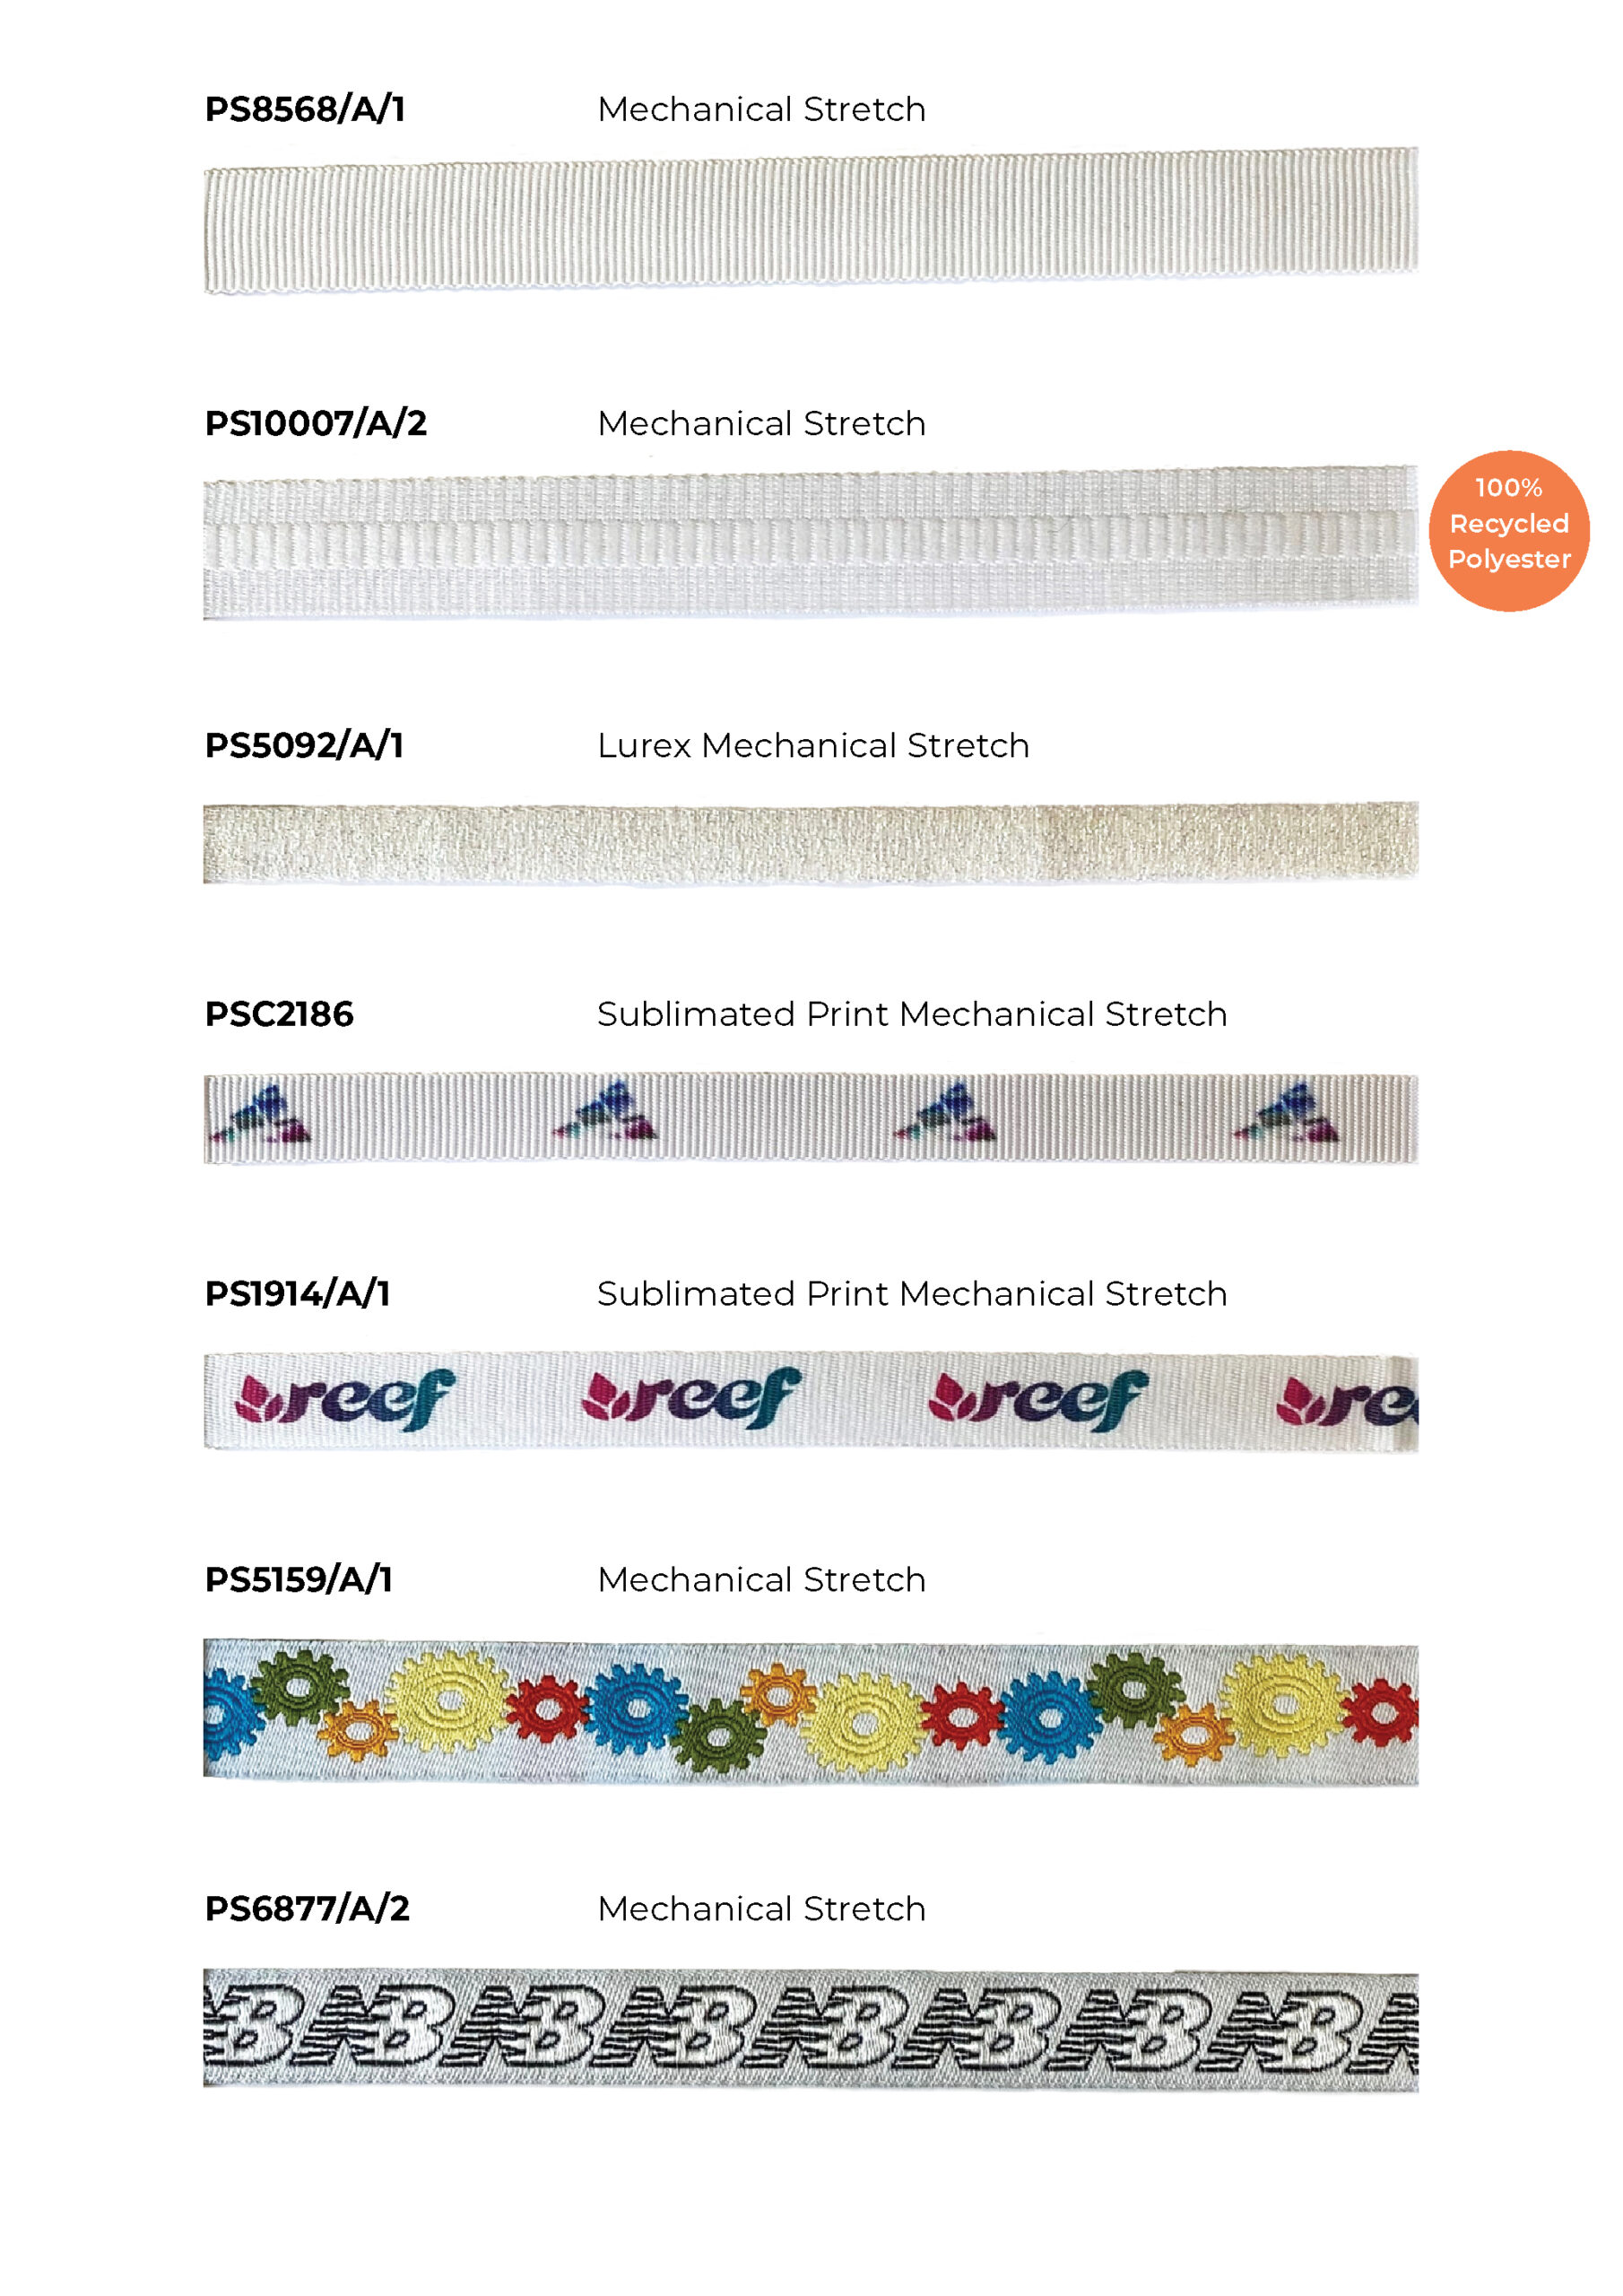 Check out our products page for more information on our trims